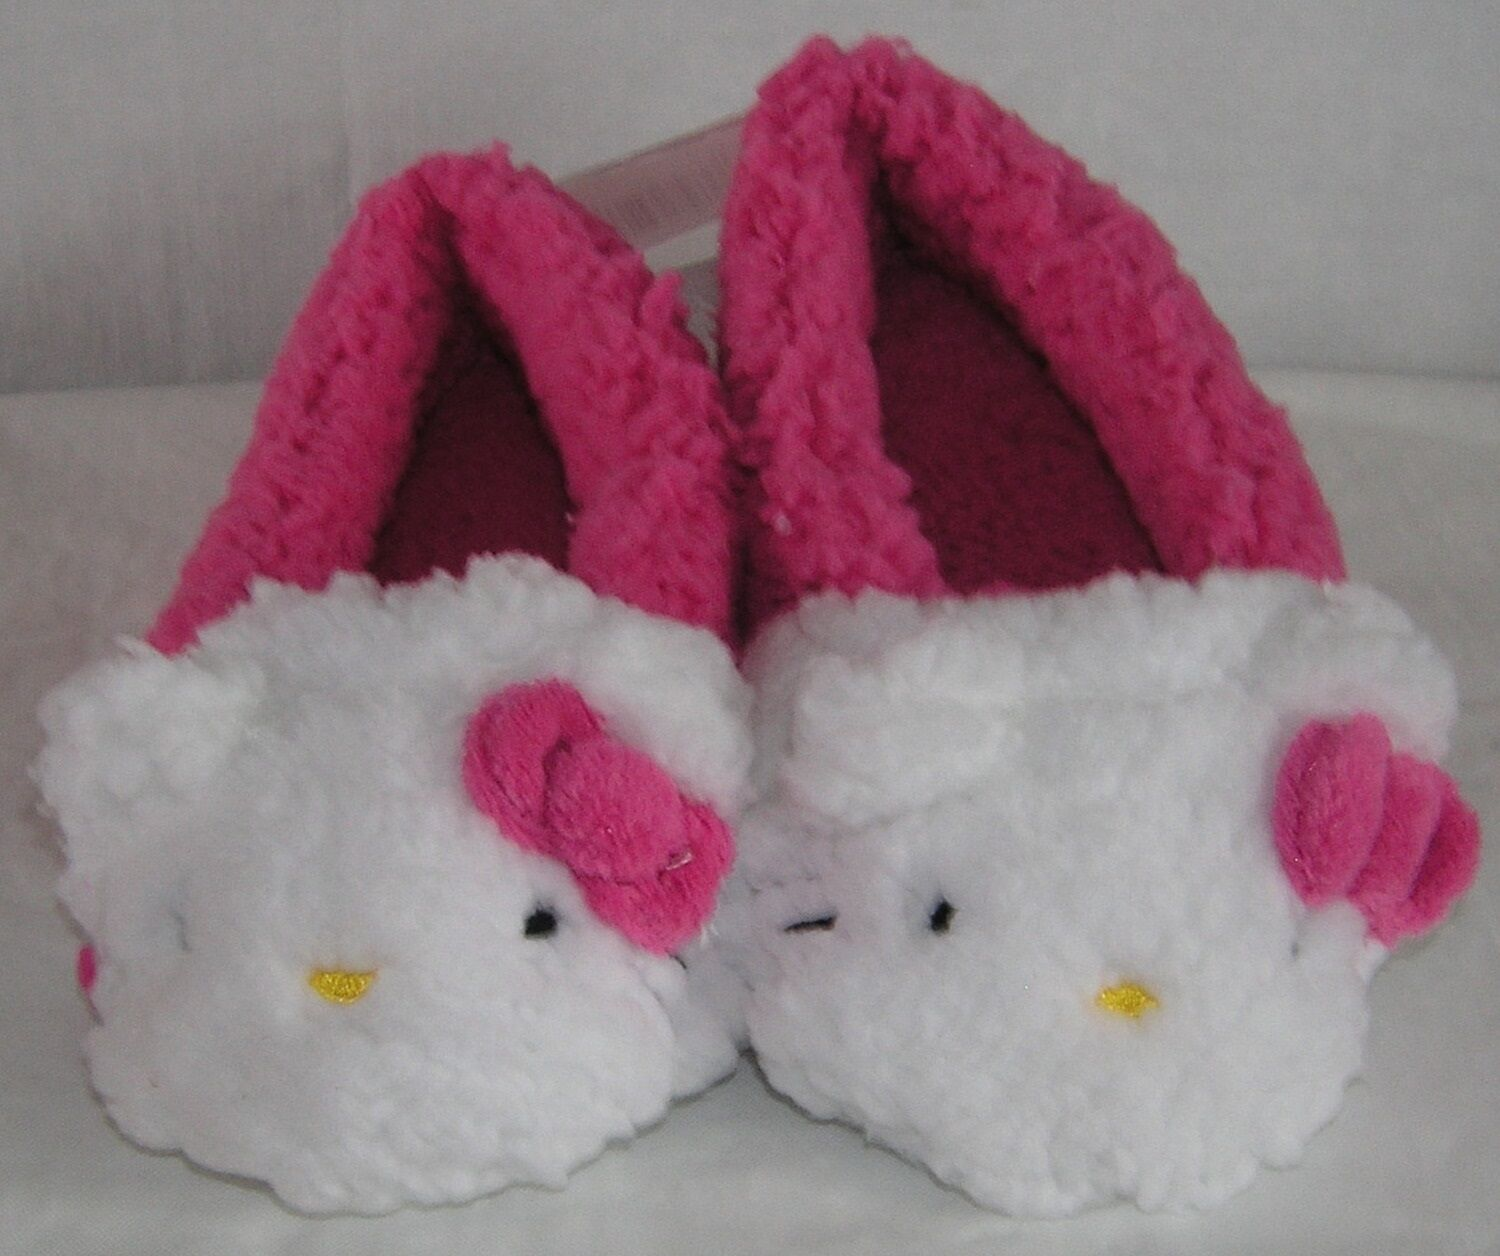 Hello Kitty Plush Moccasins PINK NICE GIFT FREE USA SHIPPING SMALL 5-6